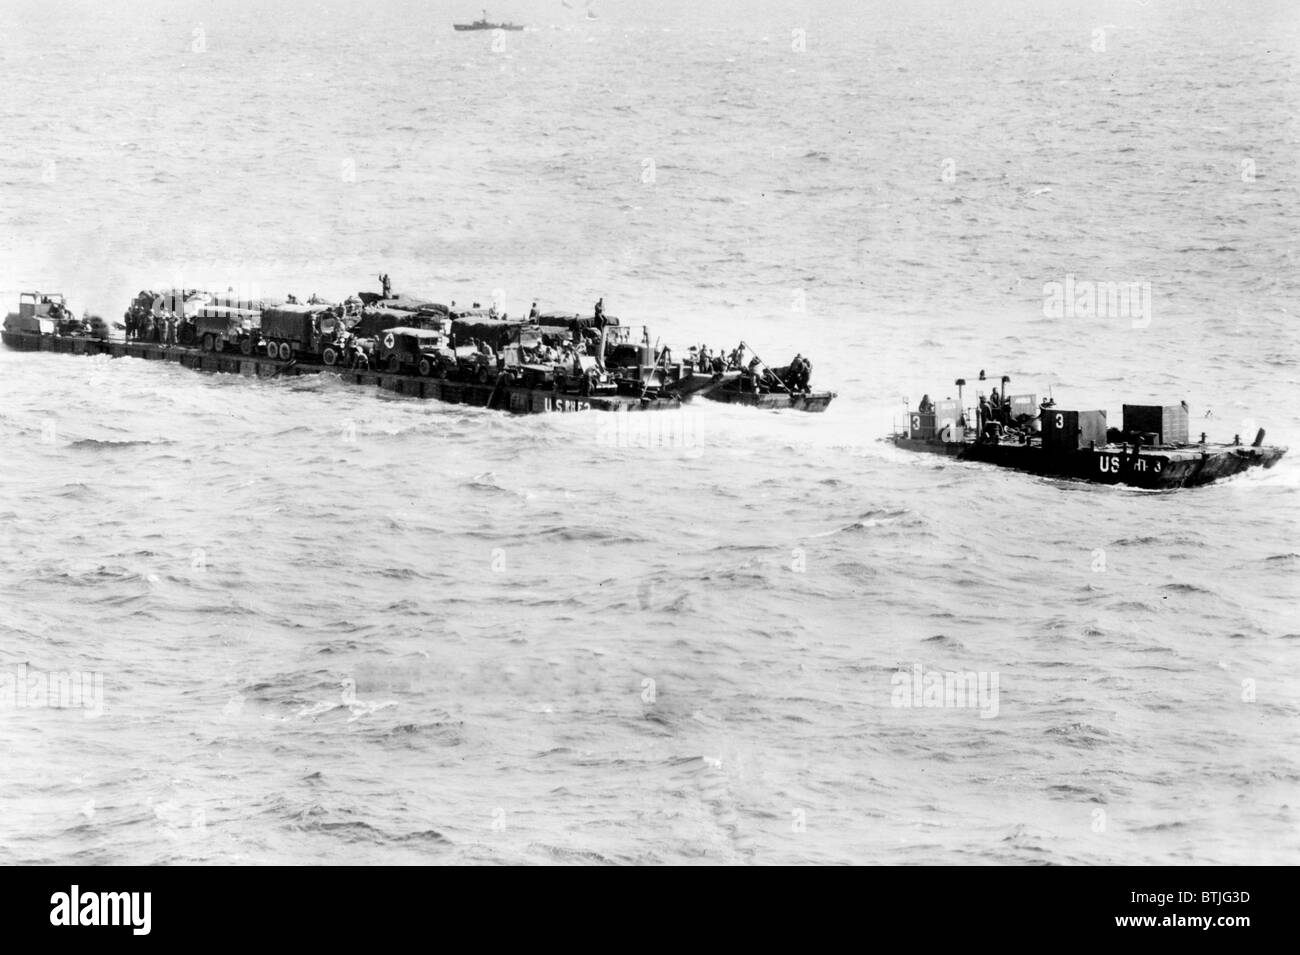 WORLD WAR II, in France, ships have difficulty crossing the English channel on invasion day. - Stock Image